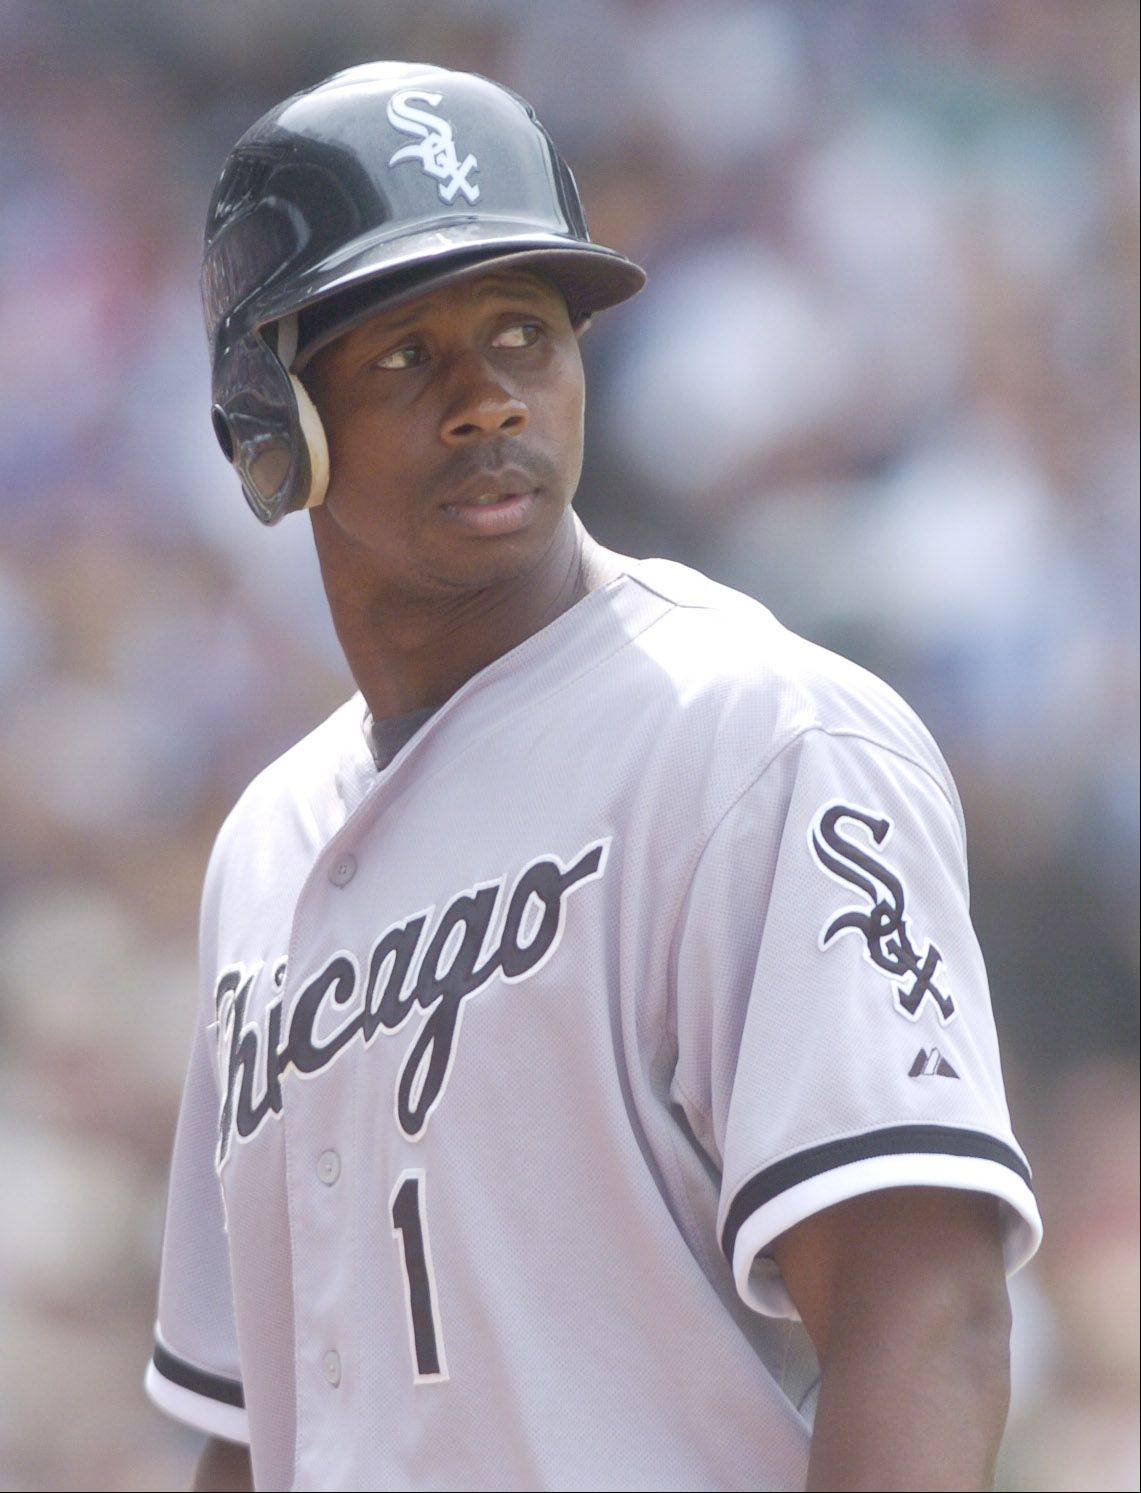 Juan Pierre of the White Sox walks back to the dugout after popping out to third during the eight inning of Sunday's game against the Cubs at Wrigley Field.